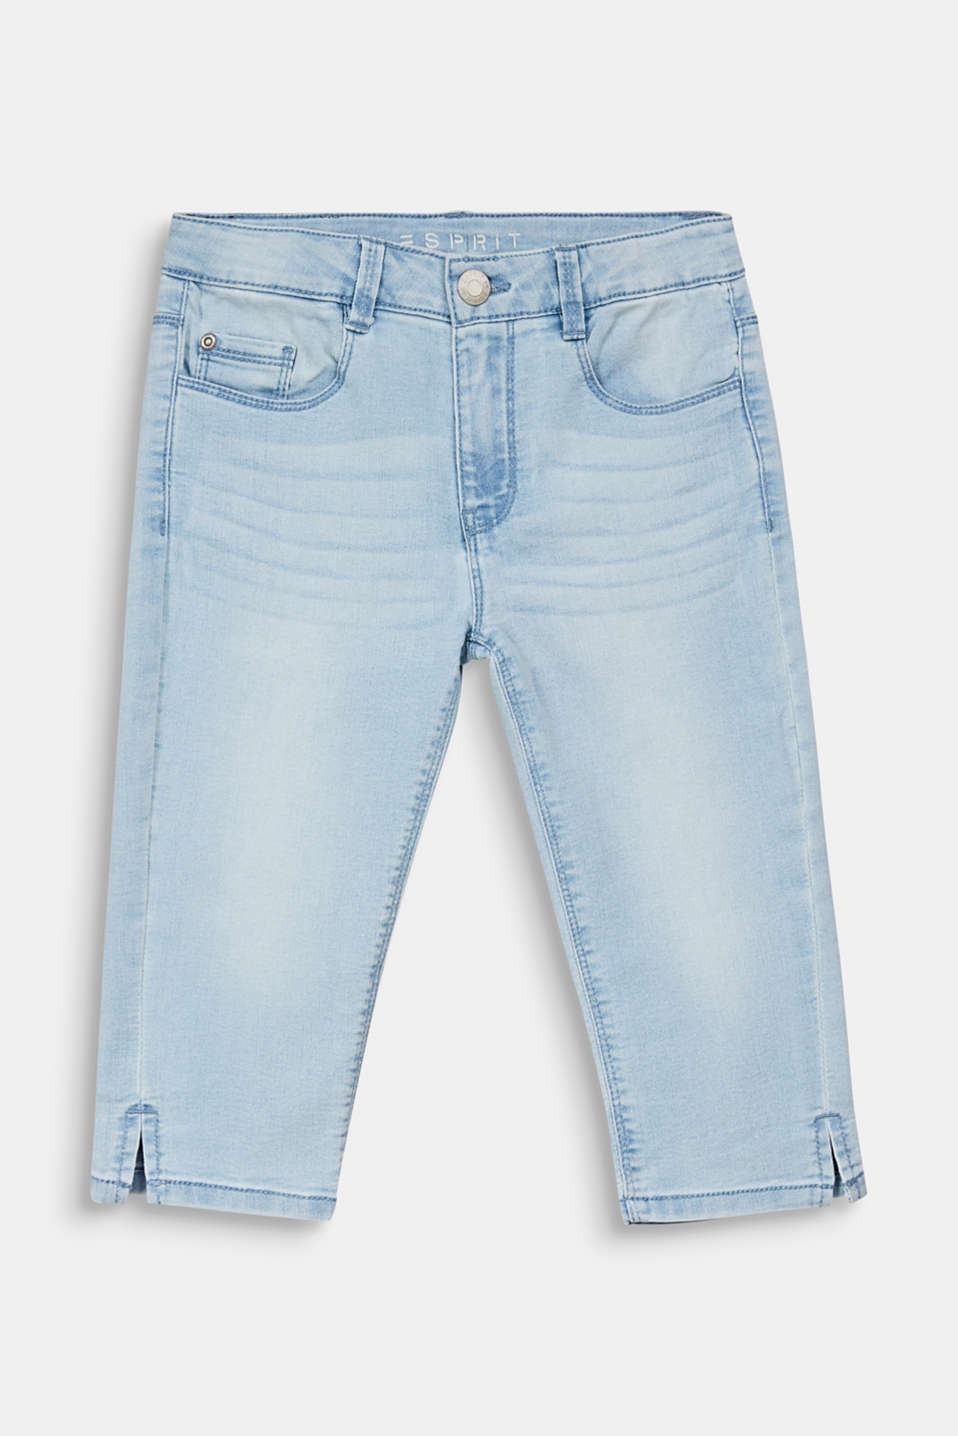 Capris jeans with an adjustable waistband, LCBLEACHED DENIM, detail image number 0